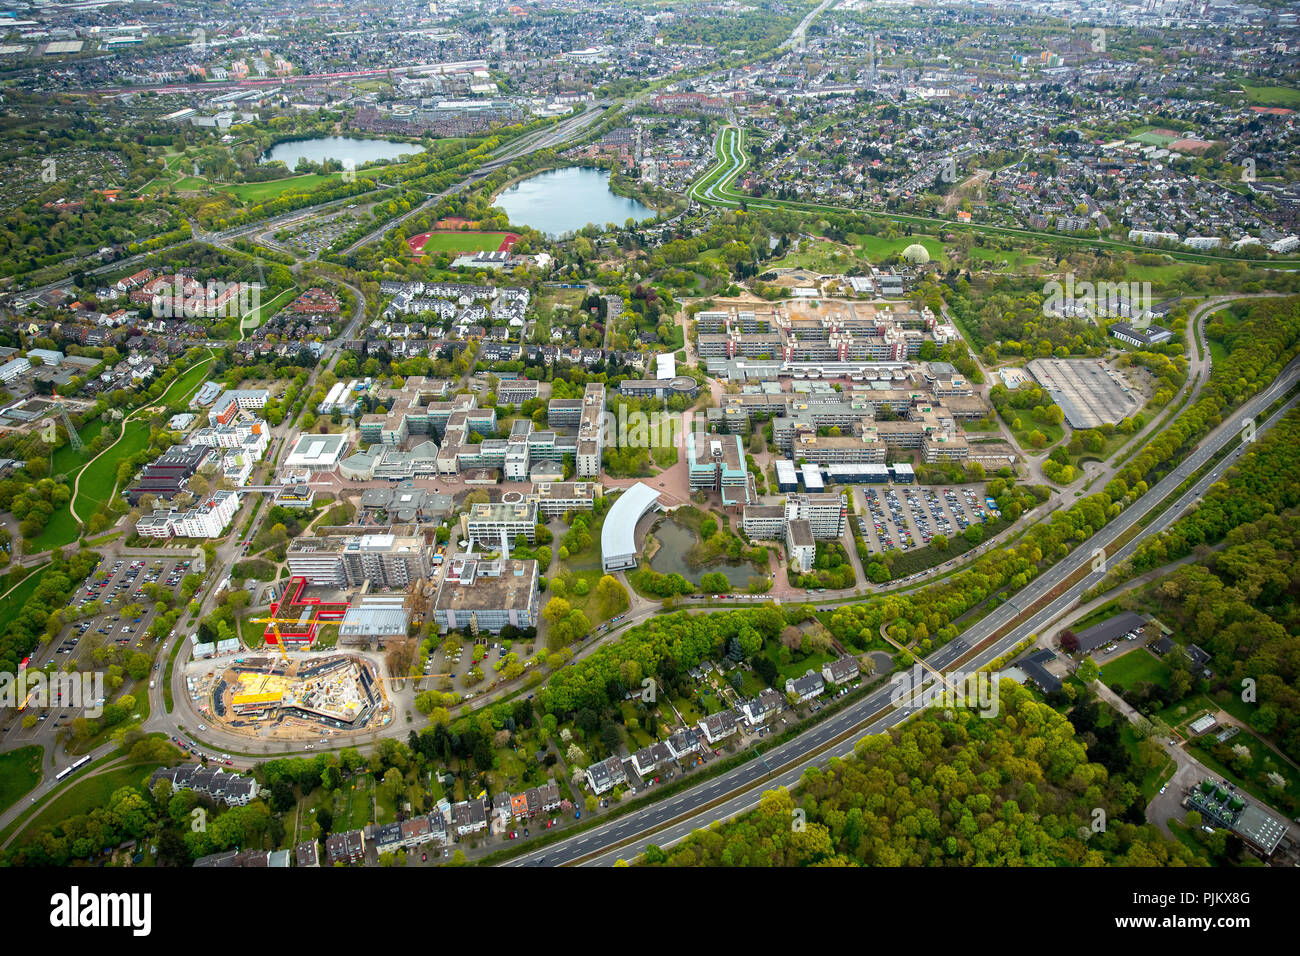 University Of Dusseldorf High Resolution Stock Photography And Images Alamy